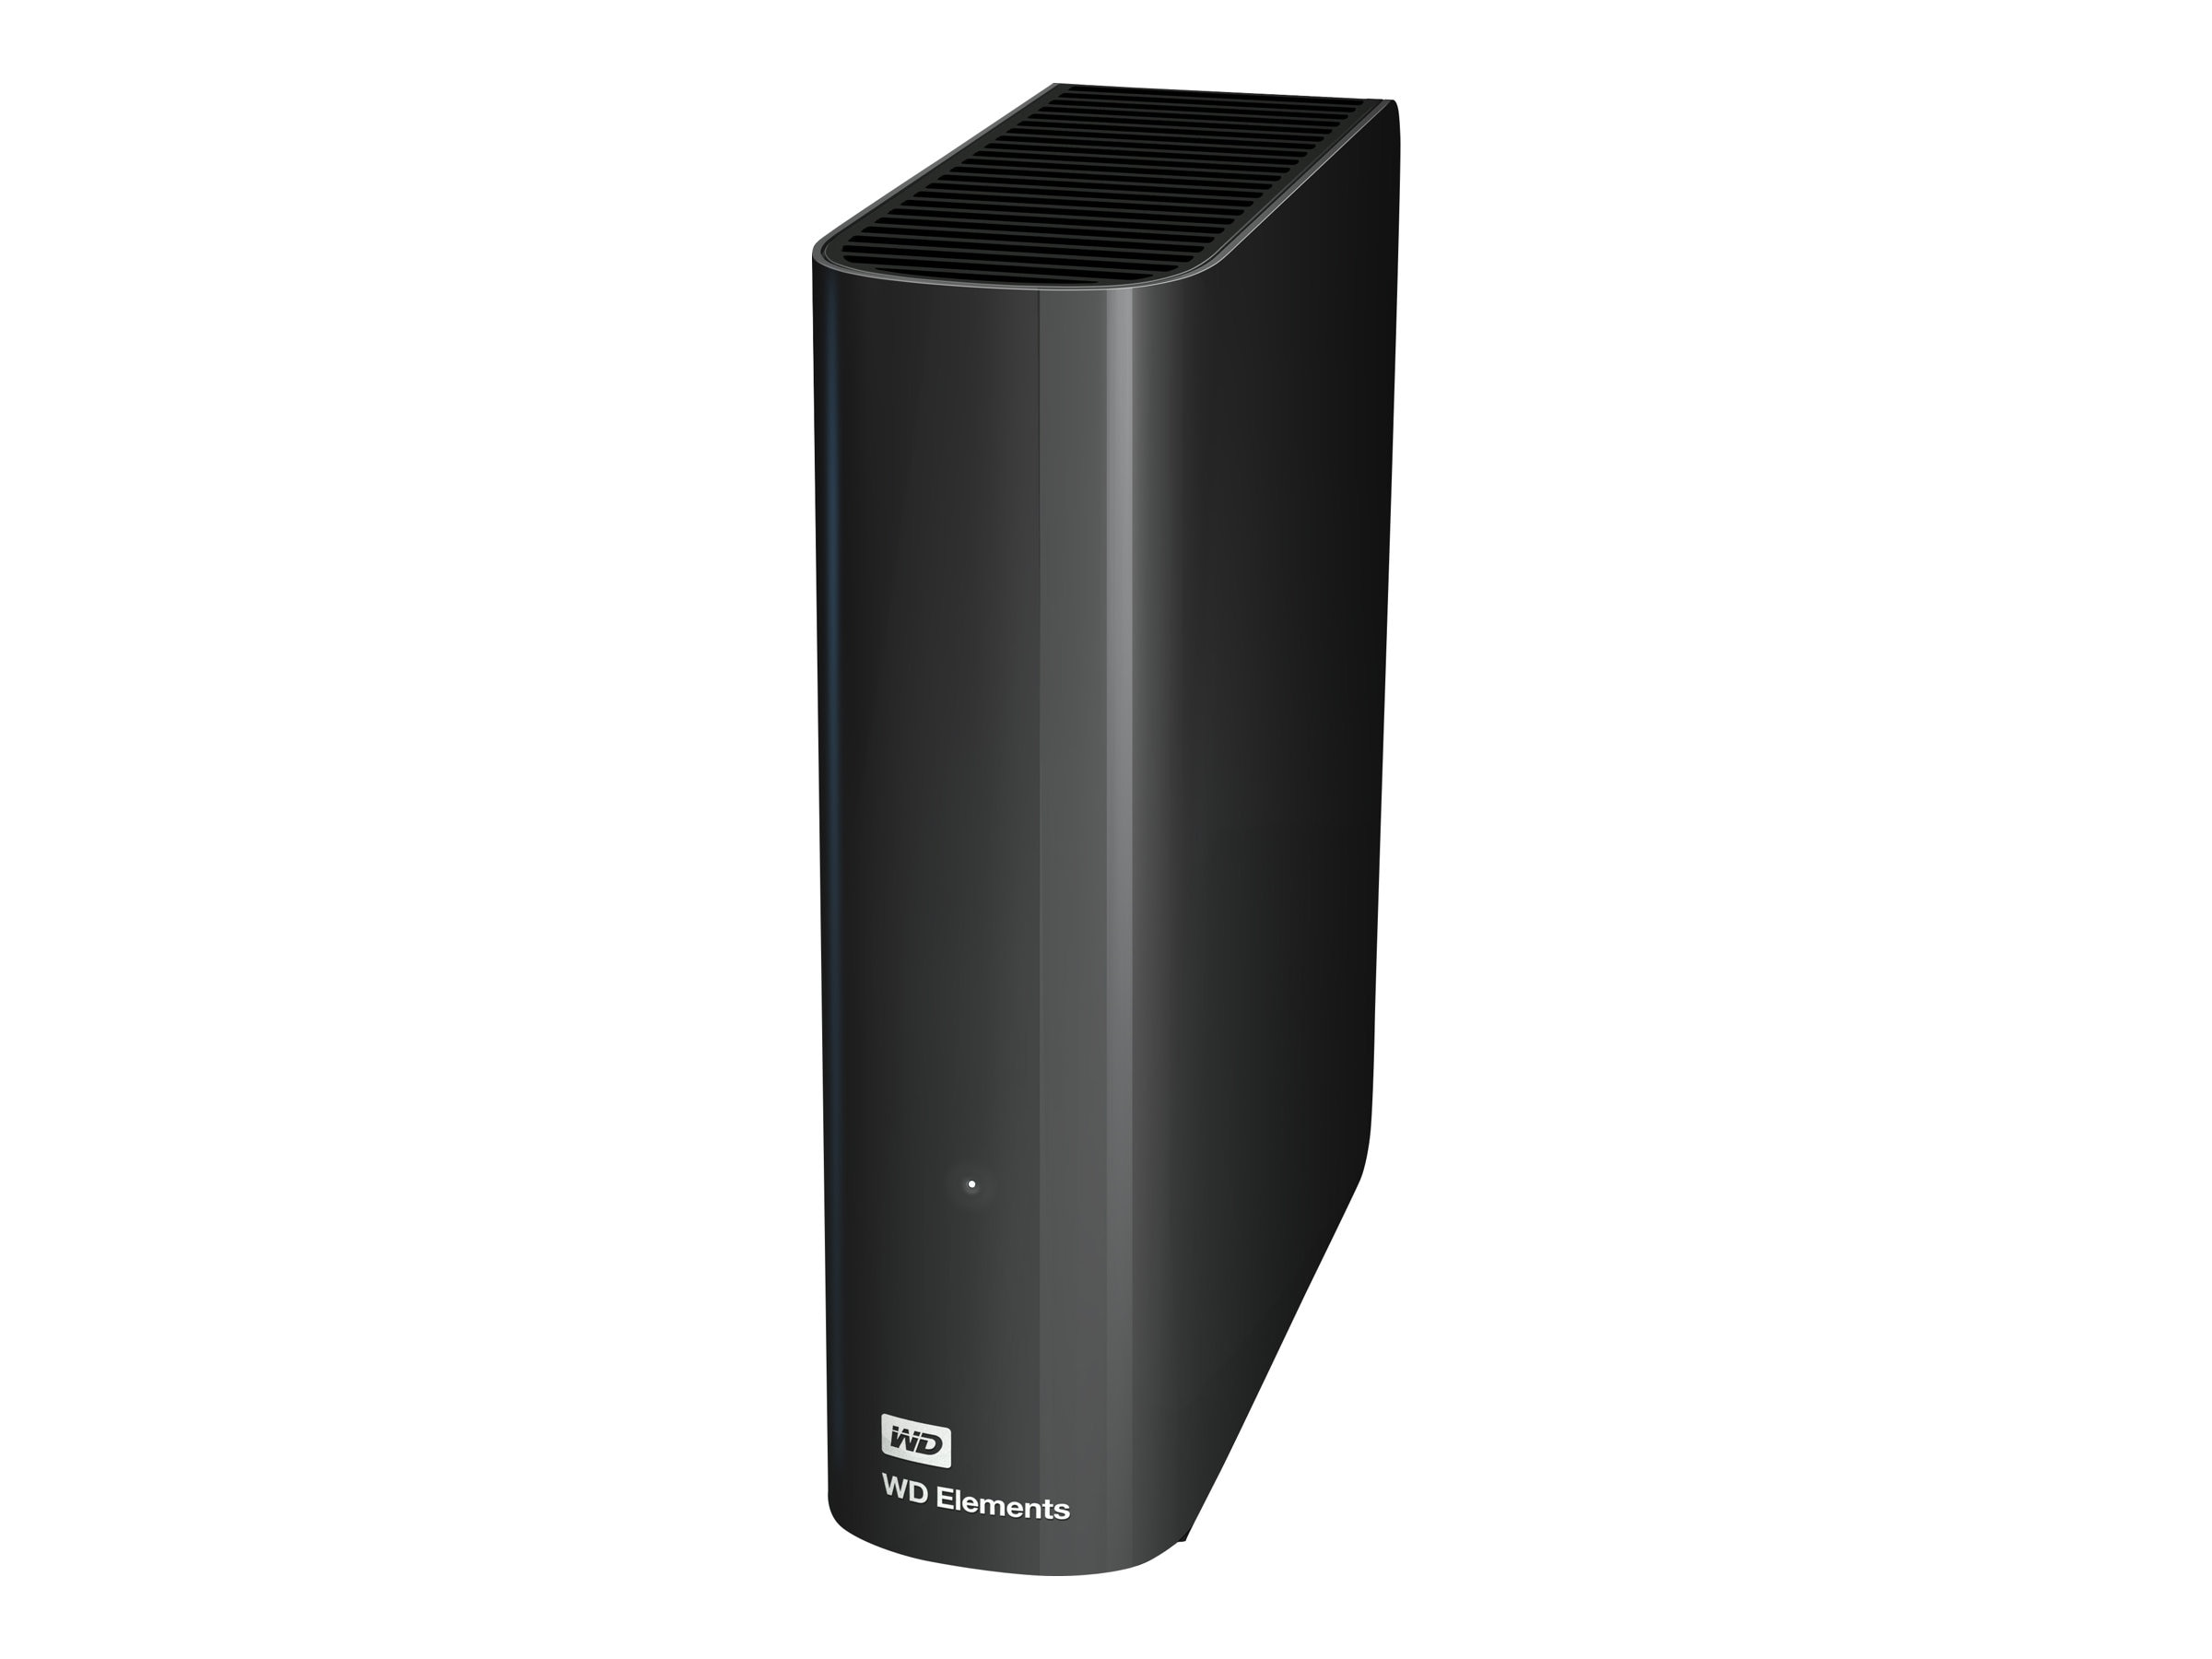 WD 3TB WD Elements Desktop USB 3.0 External Hard Drive, WDBWLG0030HBK-NESN, 17828171, Hard Drives - External